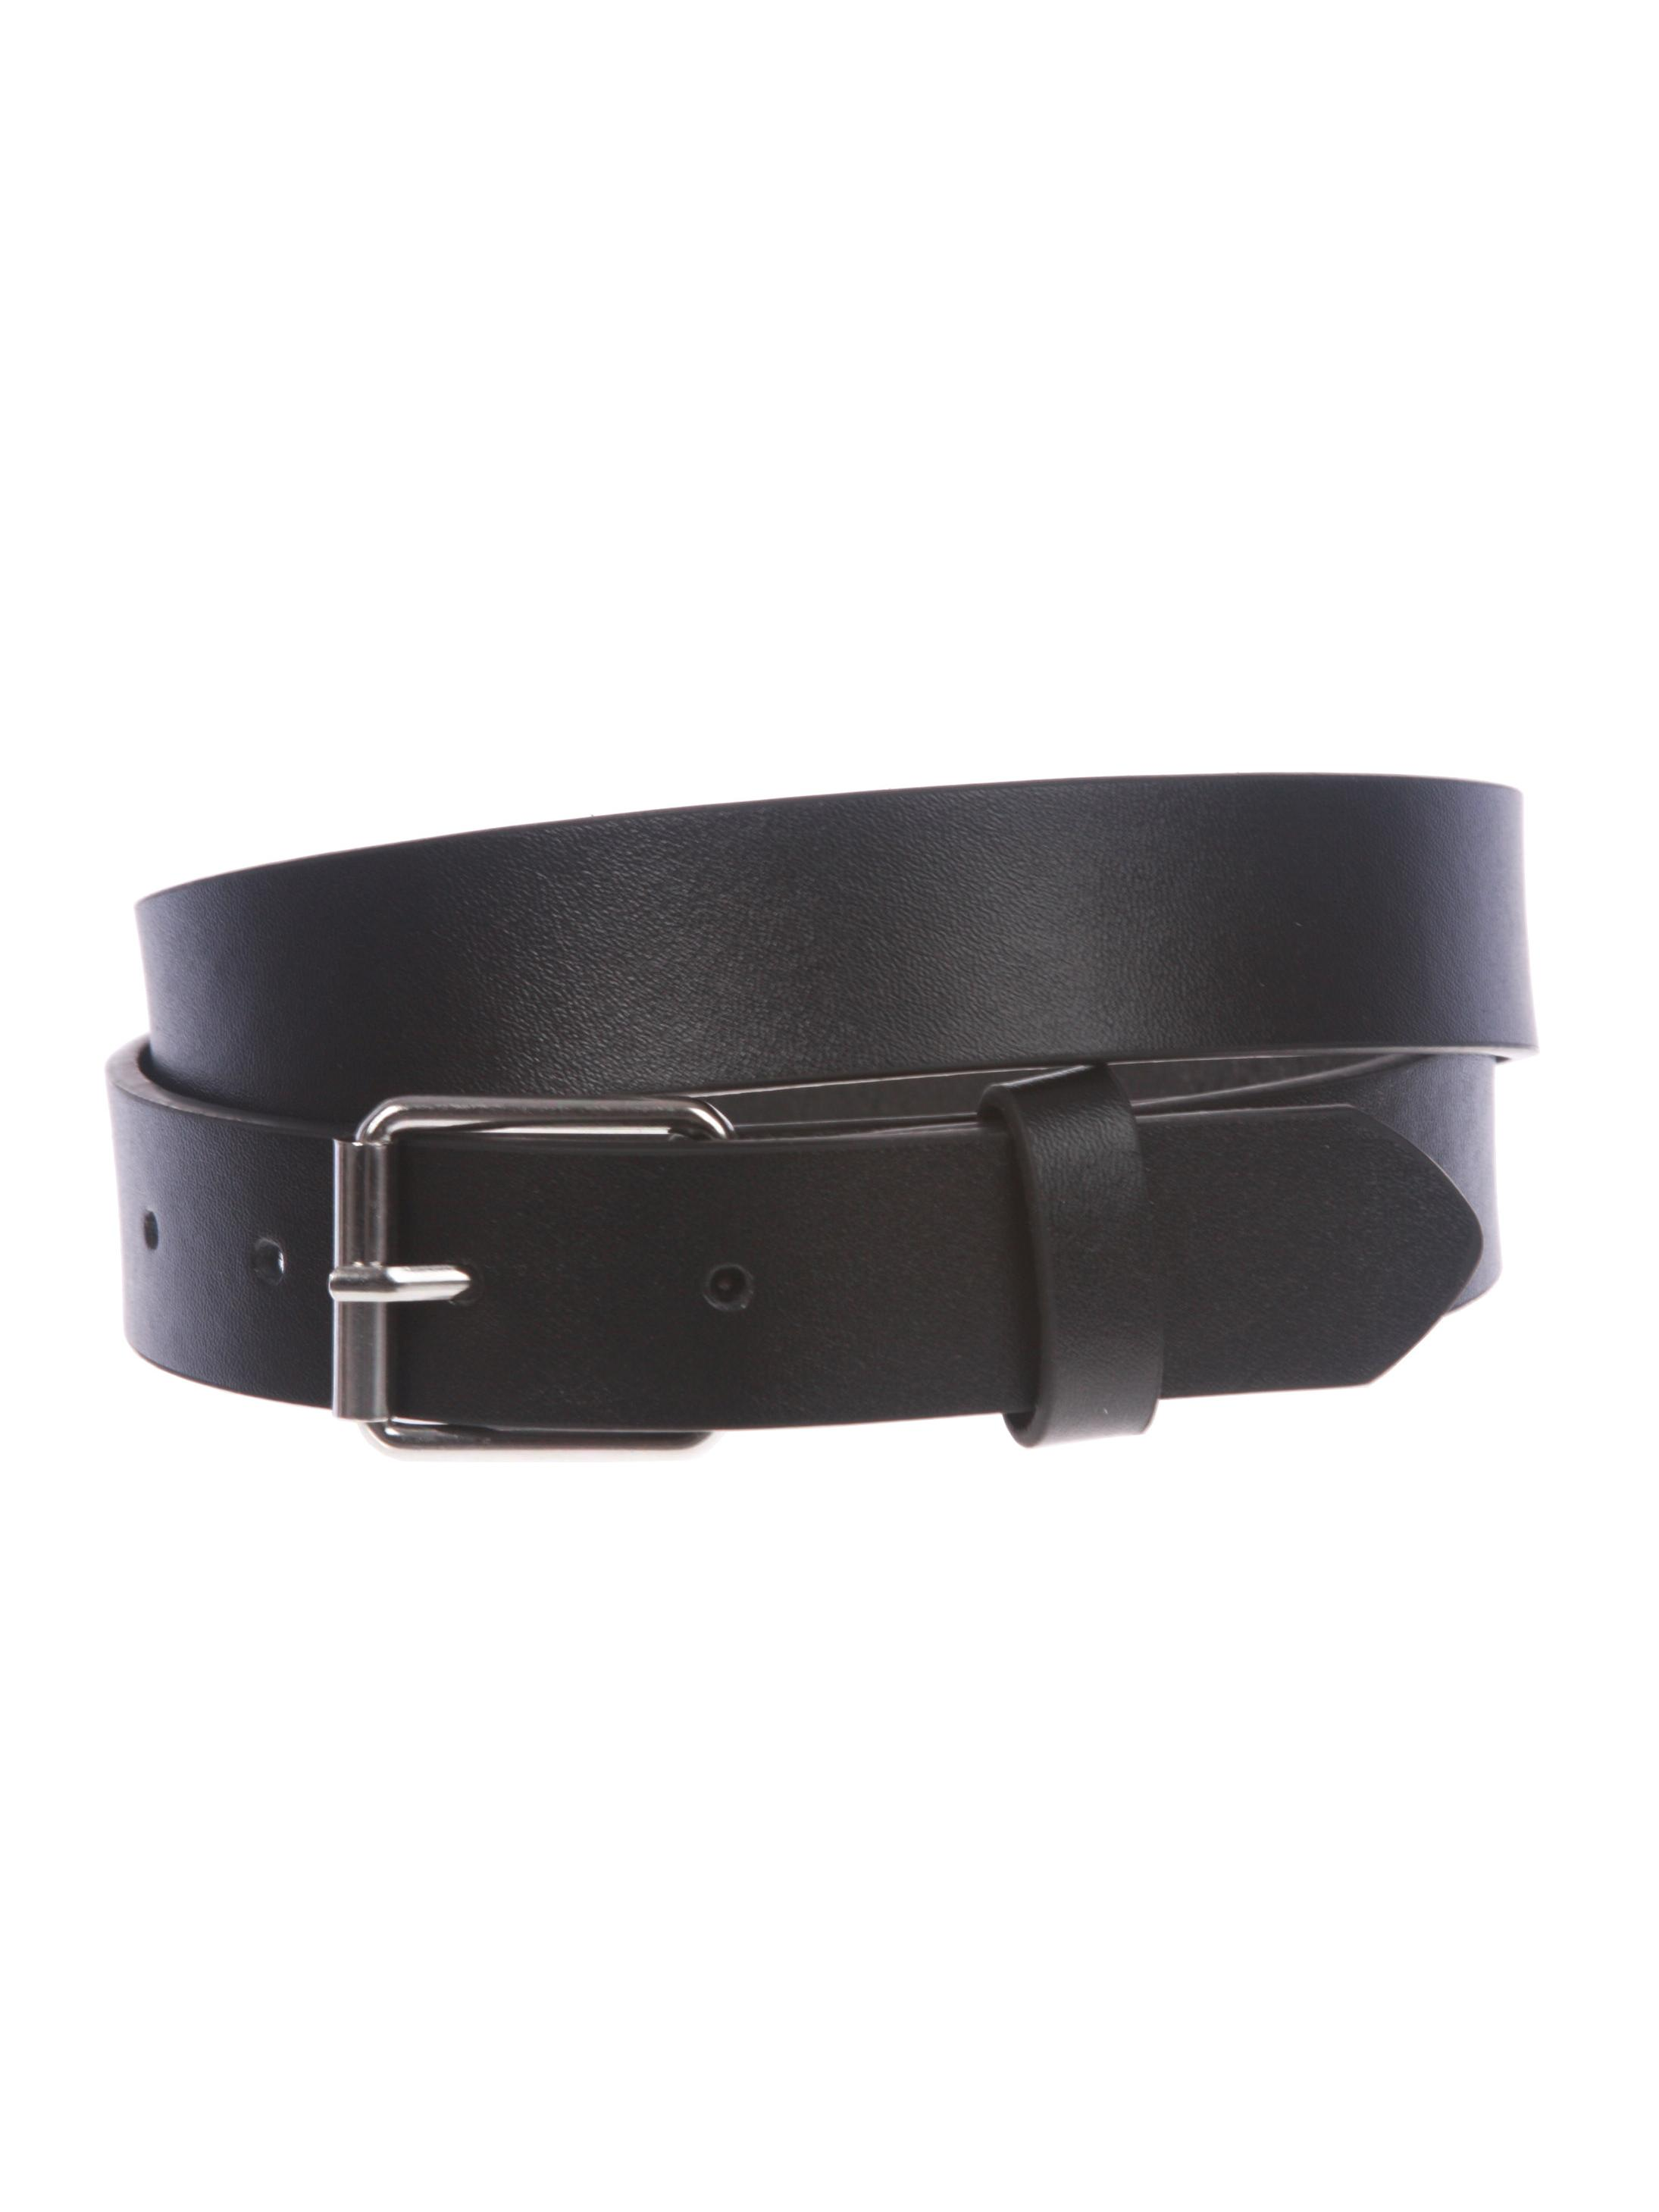 "Kids 1"" Snap On Plain Leather Belt"